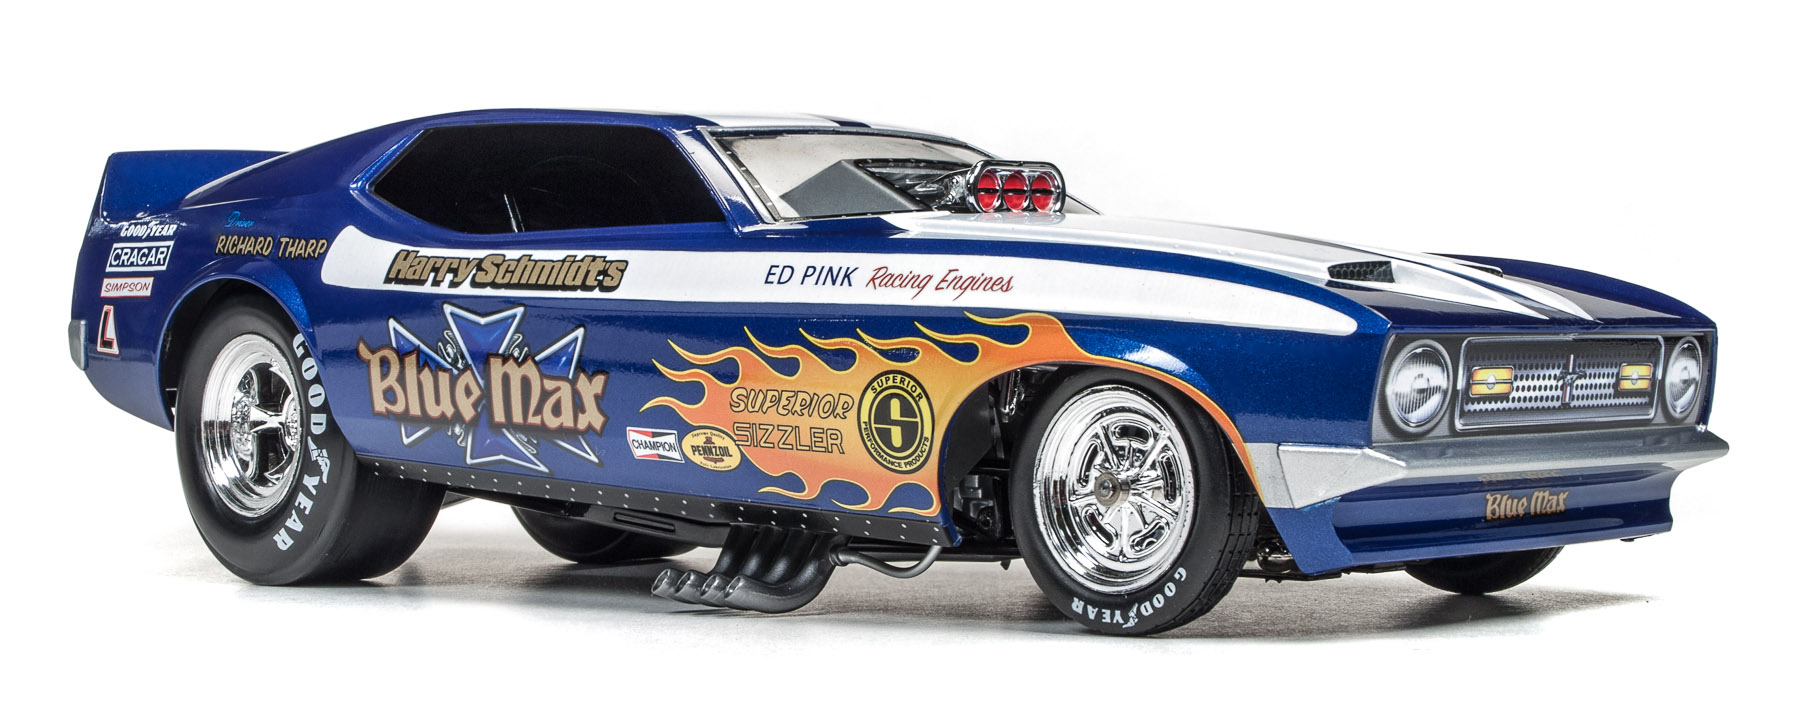 Richard Petty Mustang >> Blue Max 1971 Ford Mustang Funny Car (Richard Tharp) | Round2